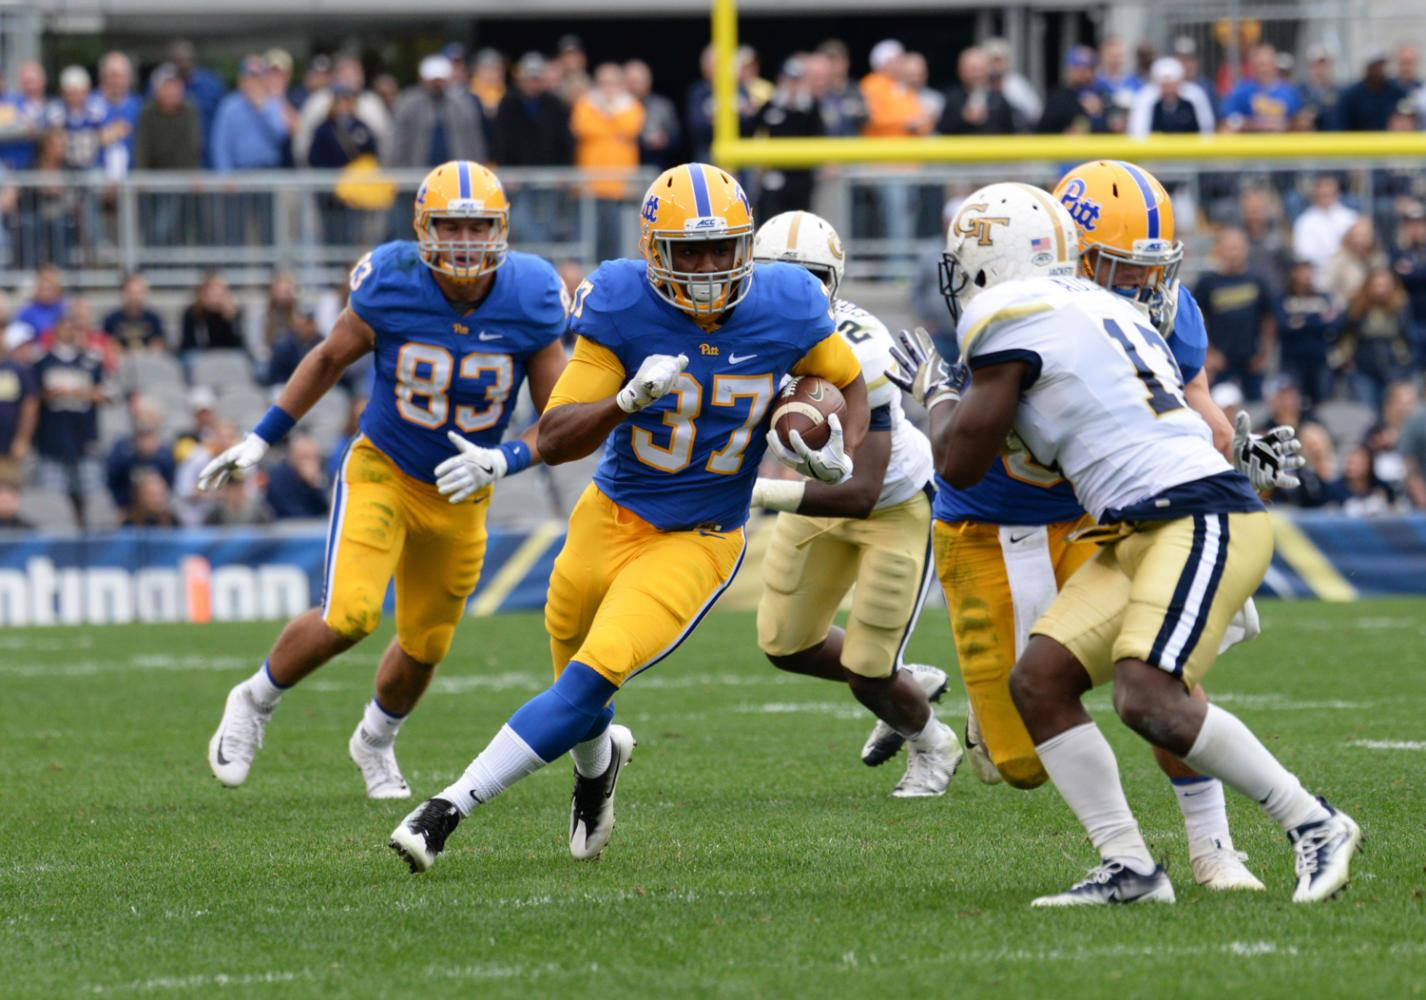 Qadree Ollison rushed 20 yards and made a touchdown in the game against Georgia Tech last season. (TPN file photo)